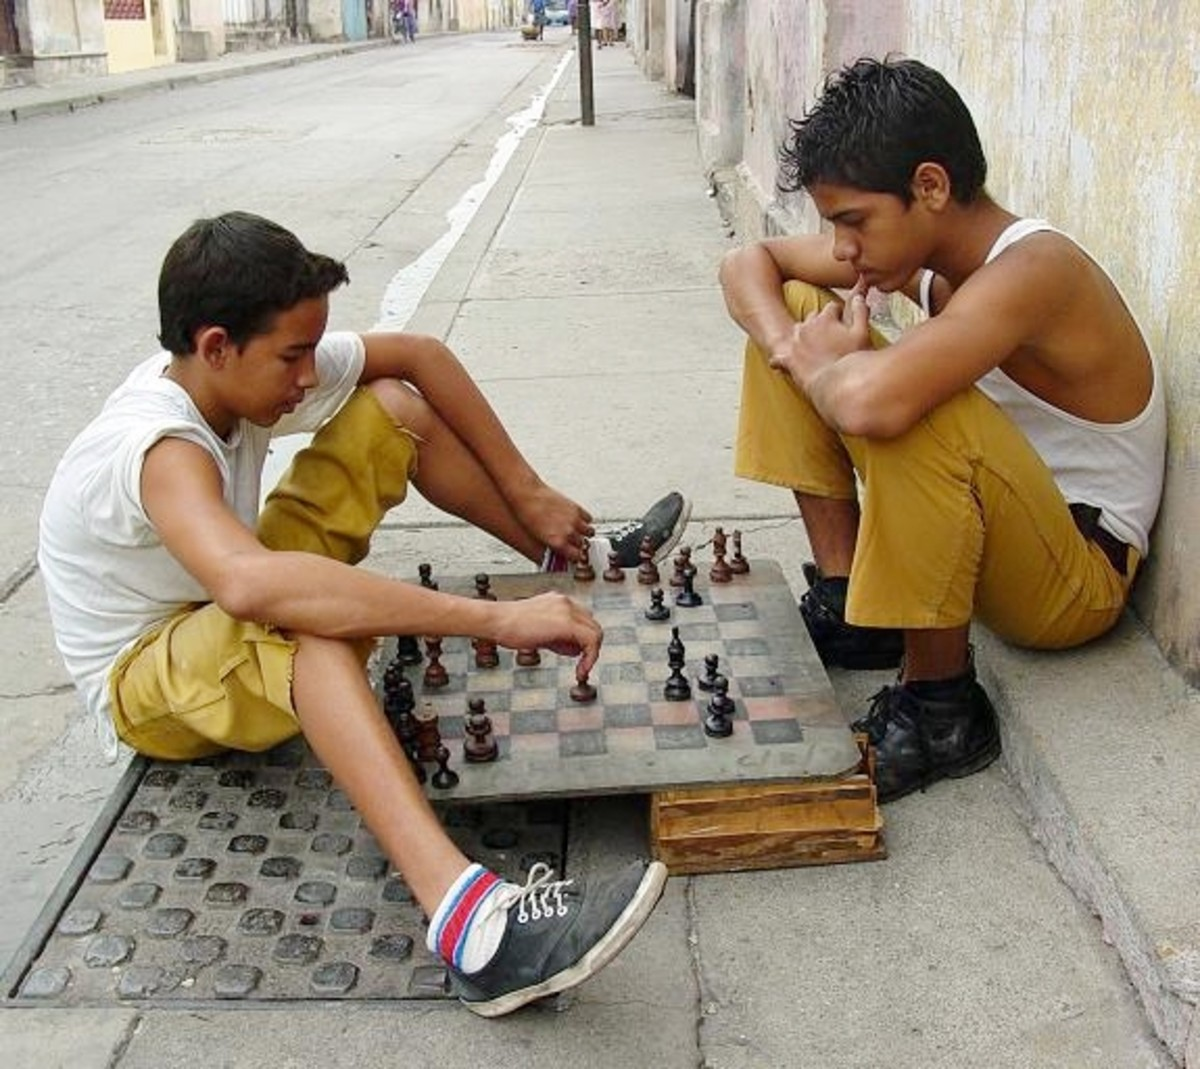 How Chess Benefits Children